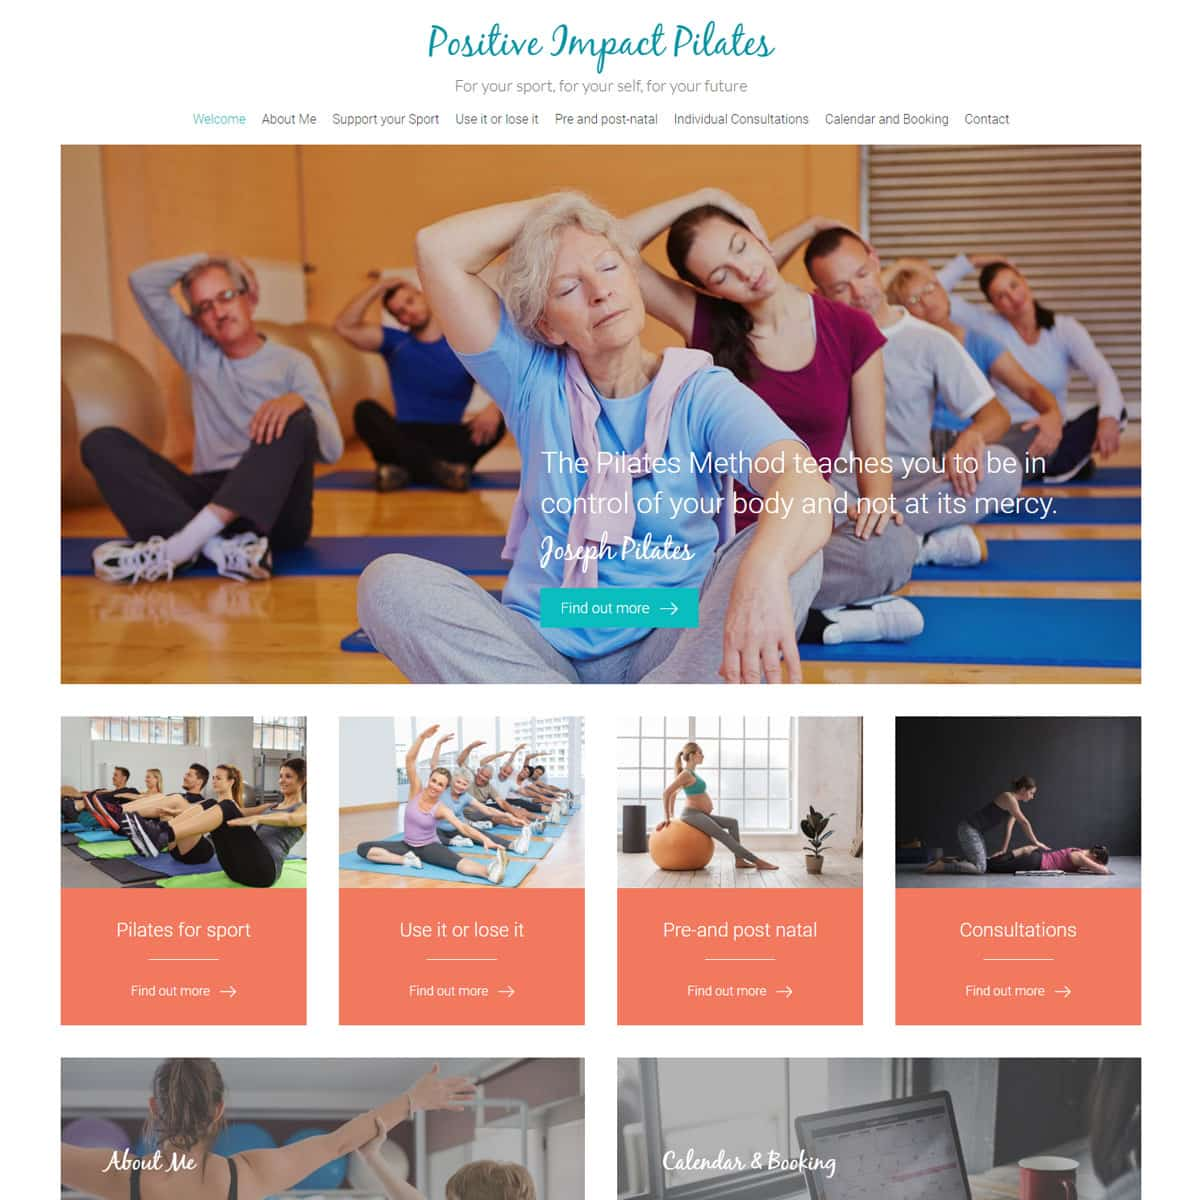 positiveimpactpilates